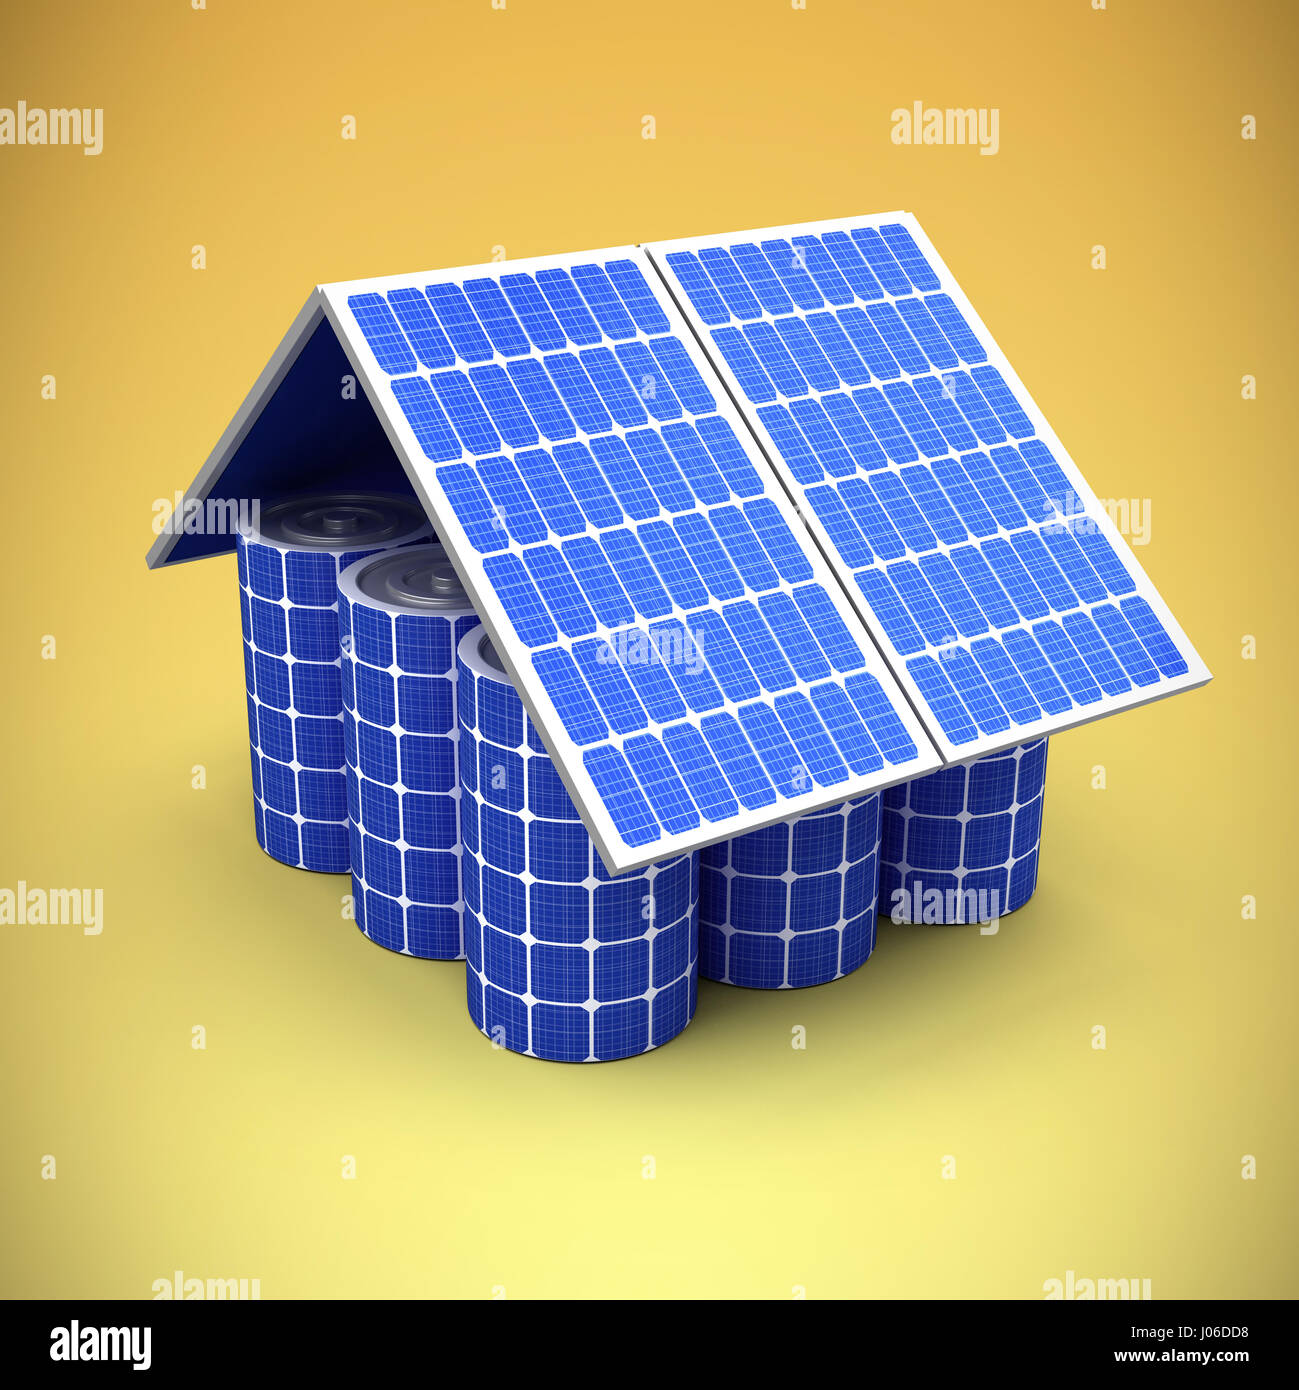 3d image of model house made from solar panels and cells against yellow vignette - Stock Image